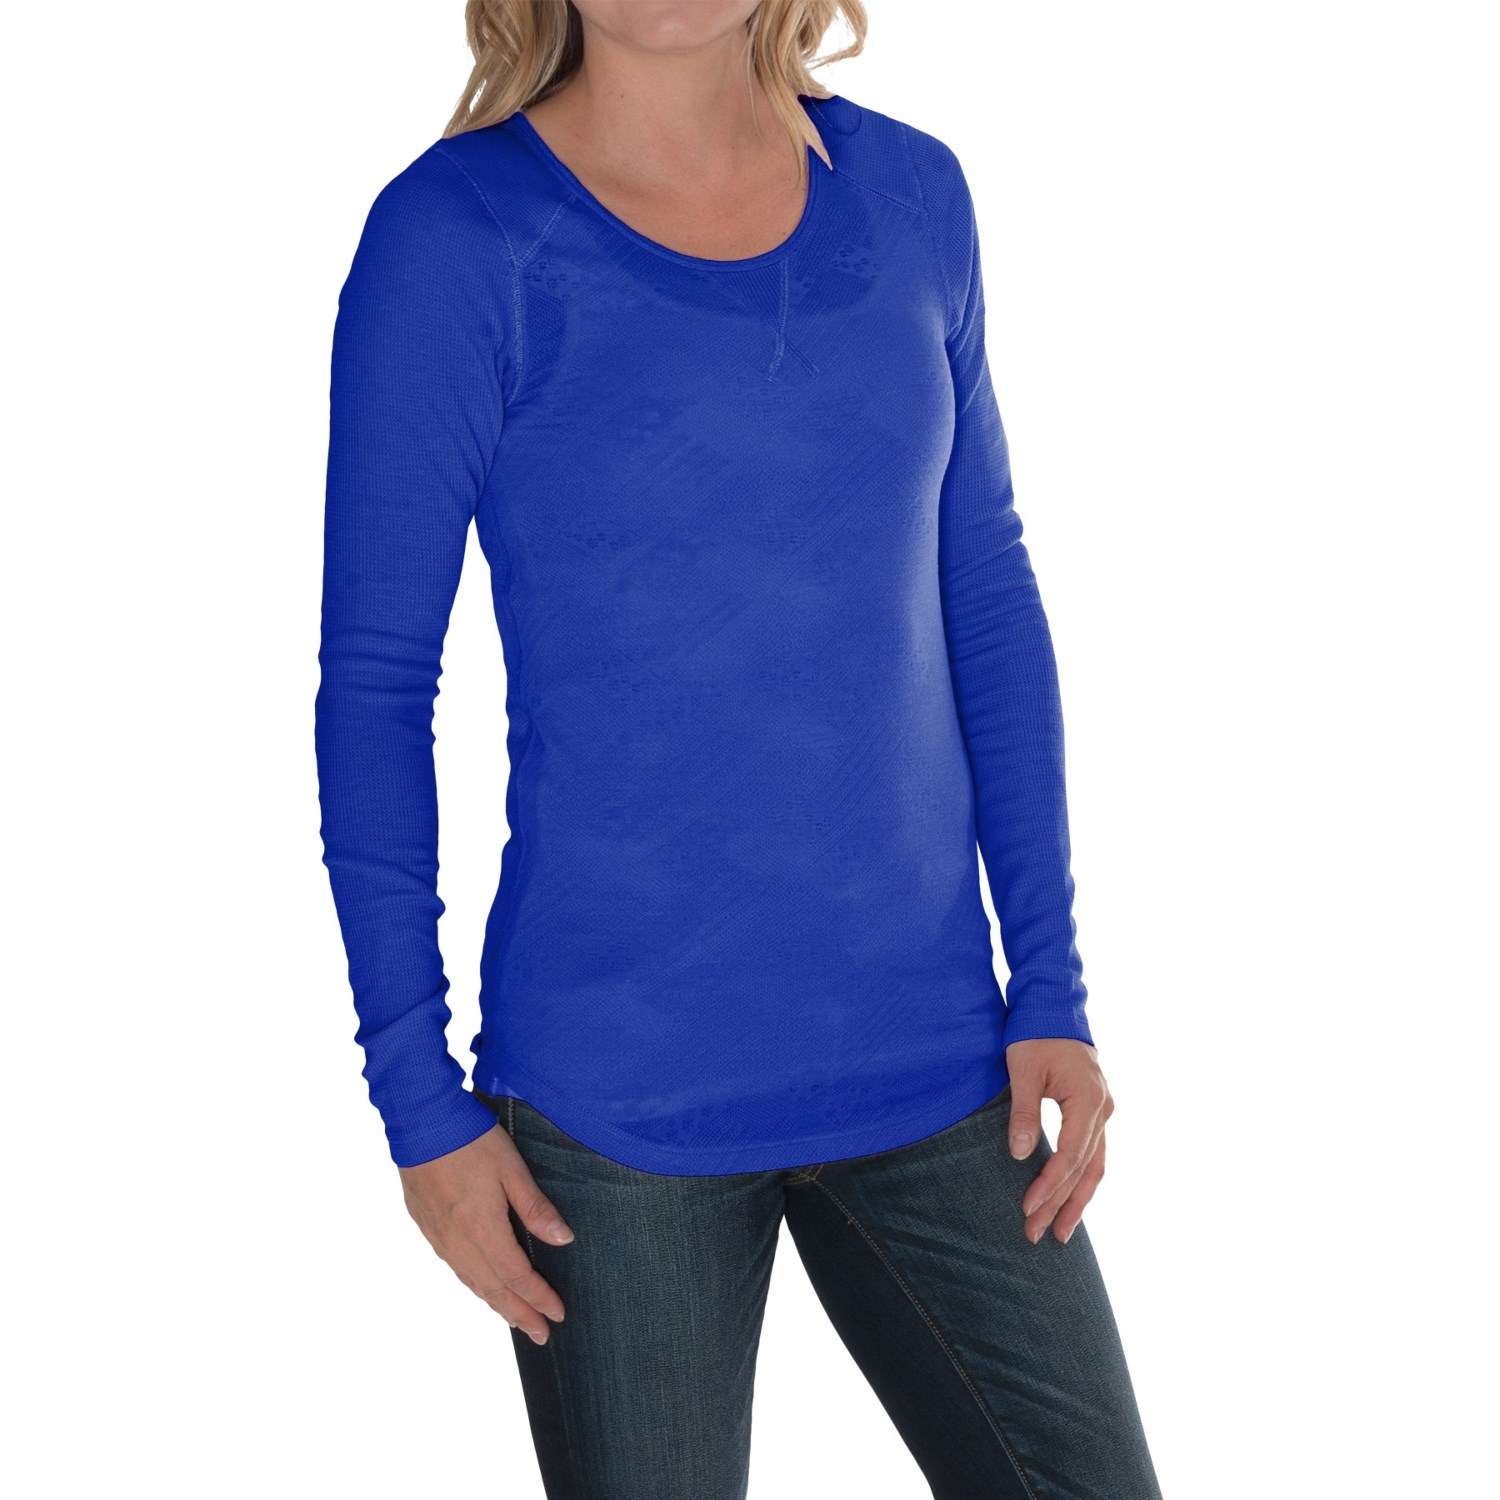 Lucky Brand Jacquard Thermal Shirt For Women